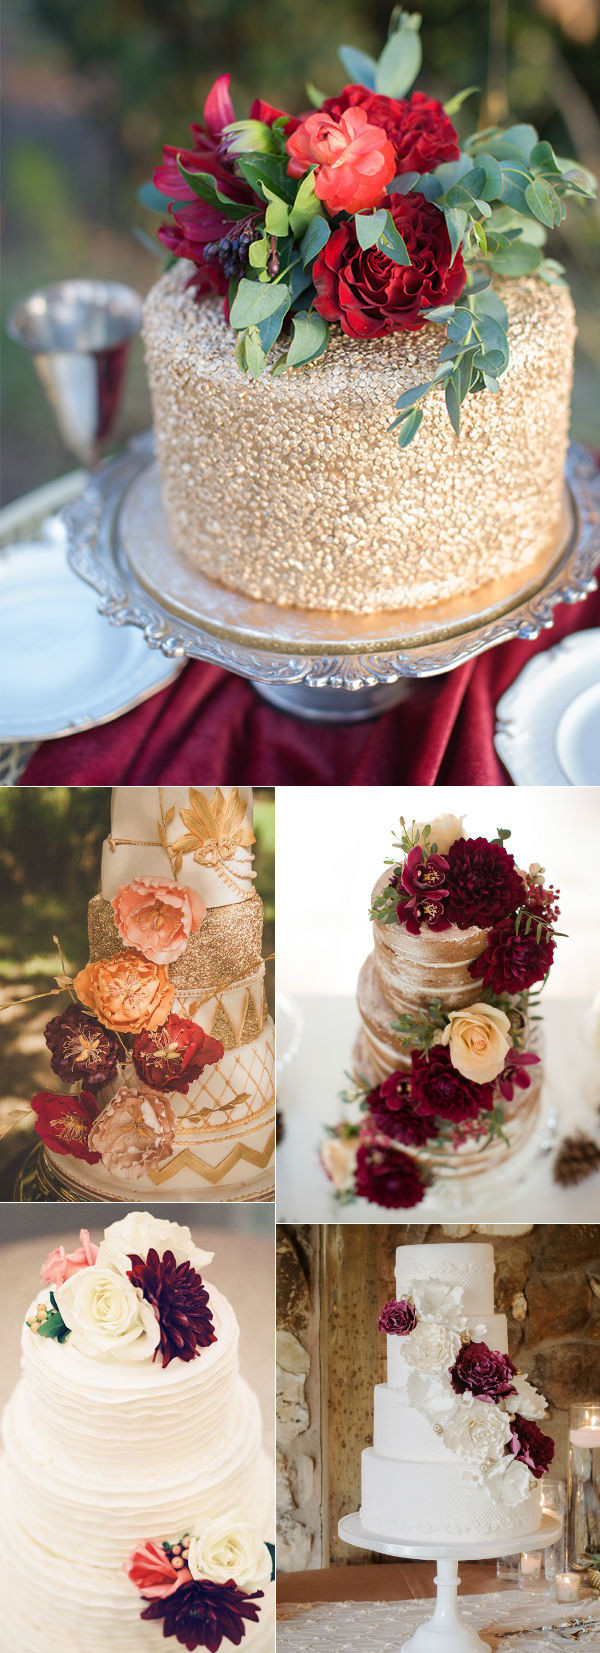 Simple Fall Wedding Cakes  32 Amazing Wedding Cakes Perfect For Fall